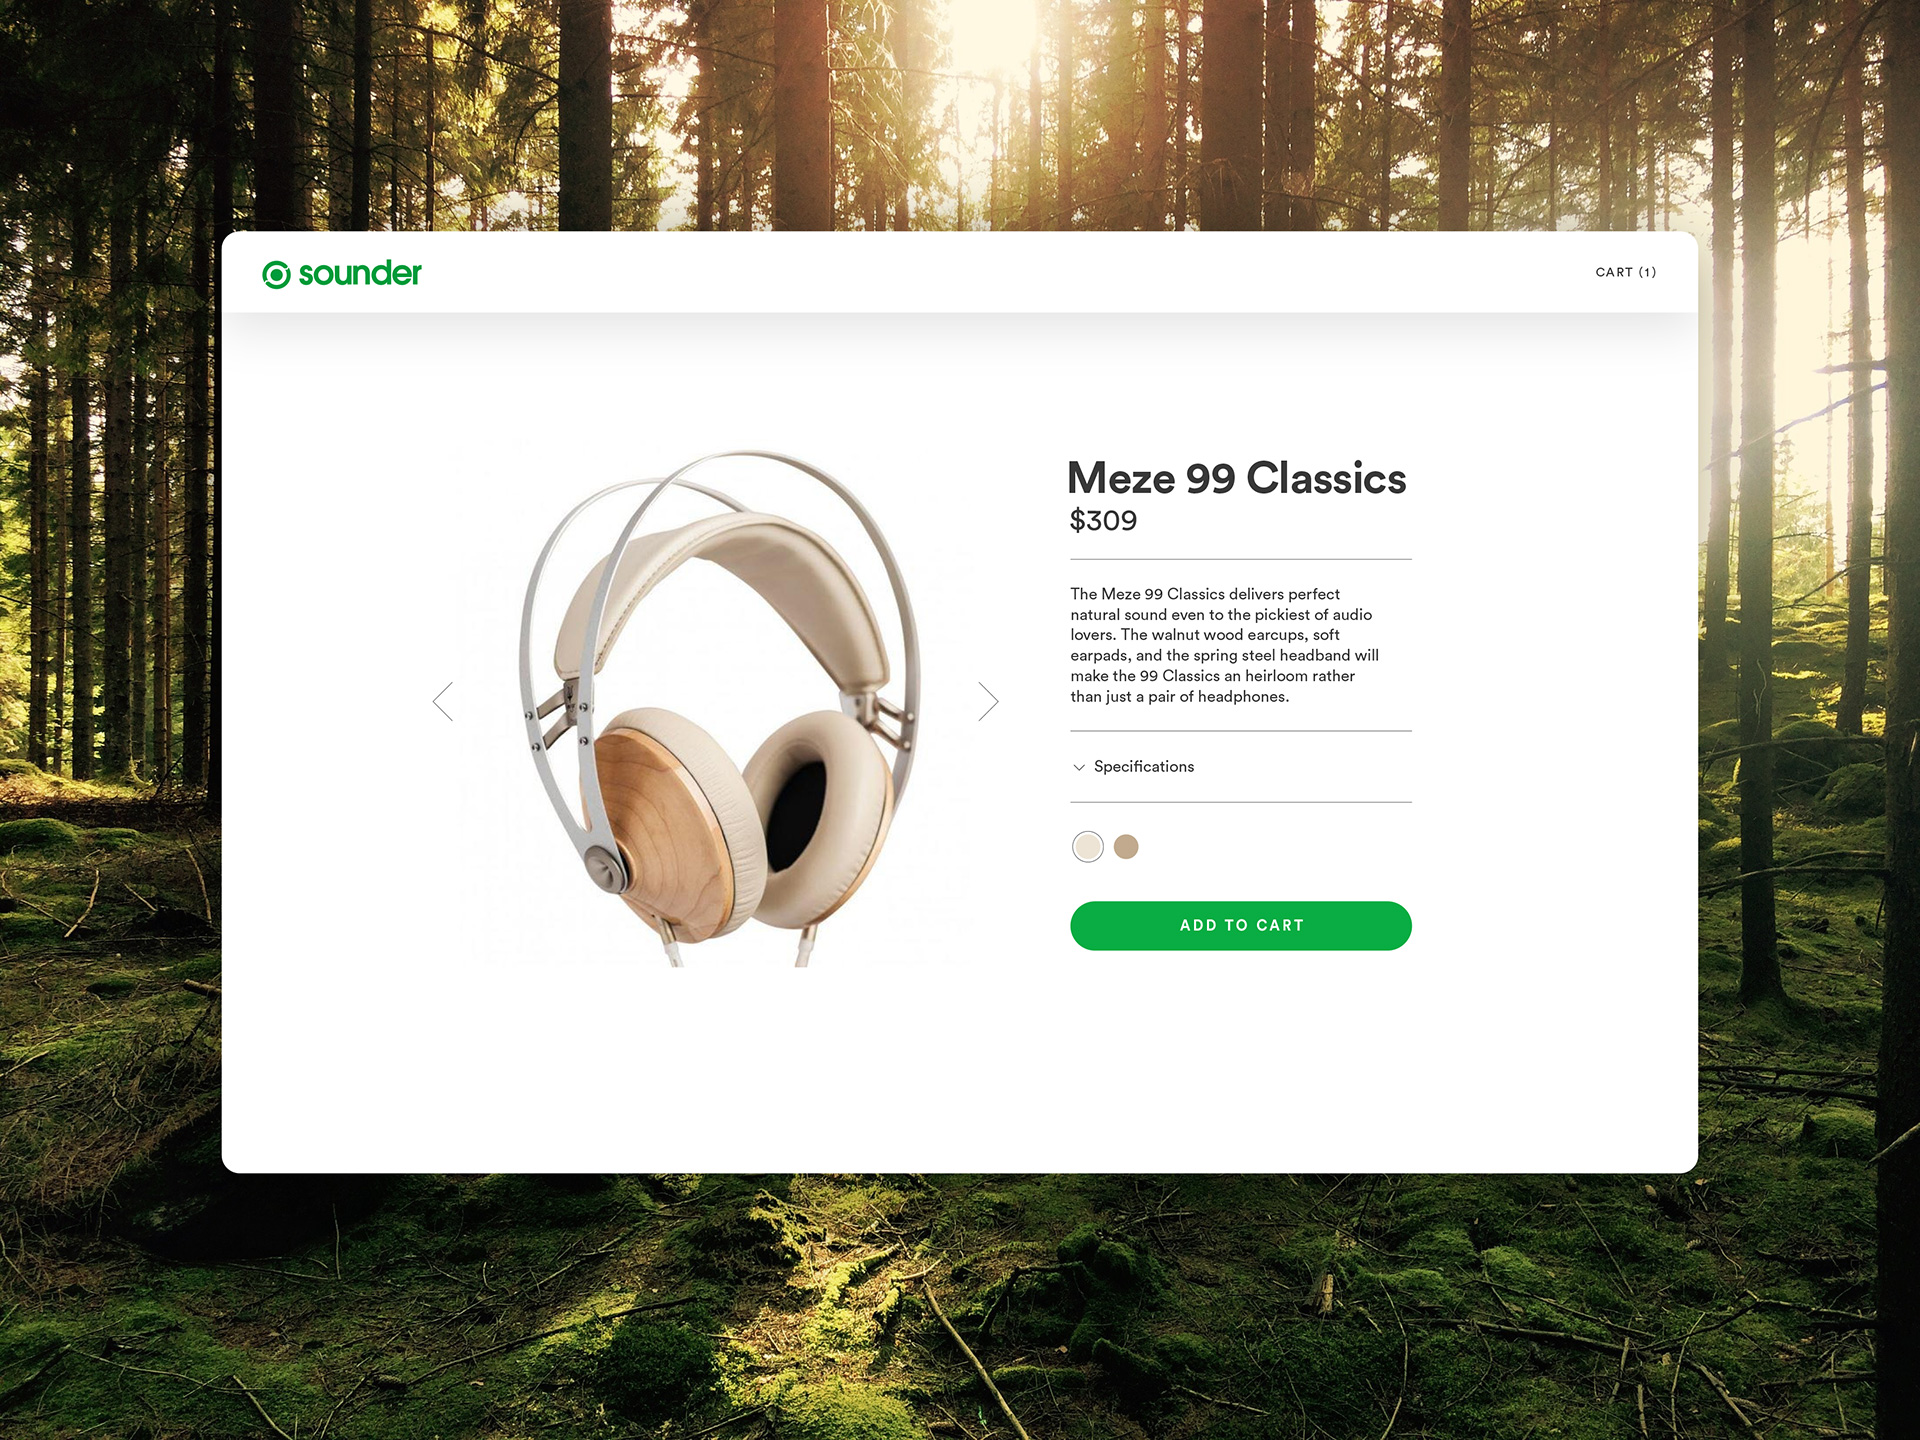 Sounder headphones